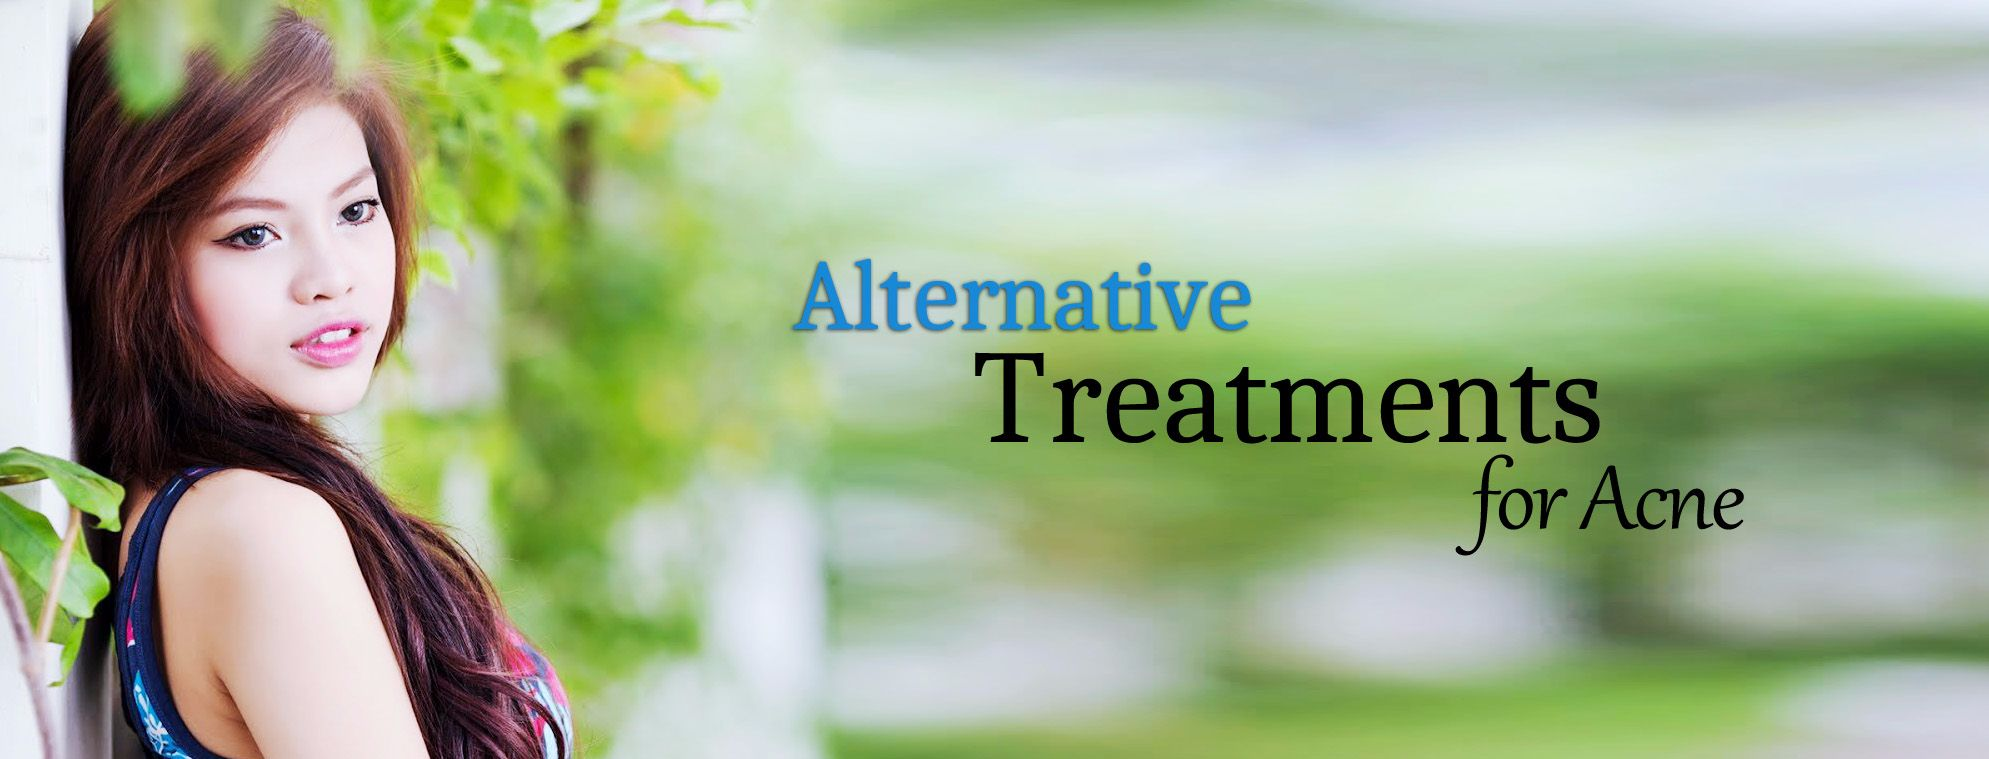 How to get rid of acne using alternative treatments